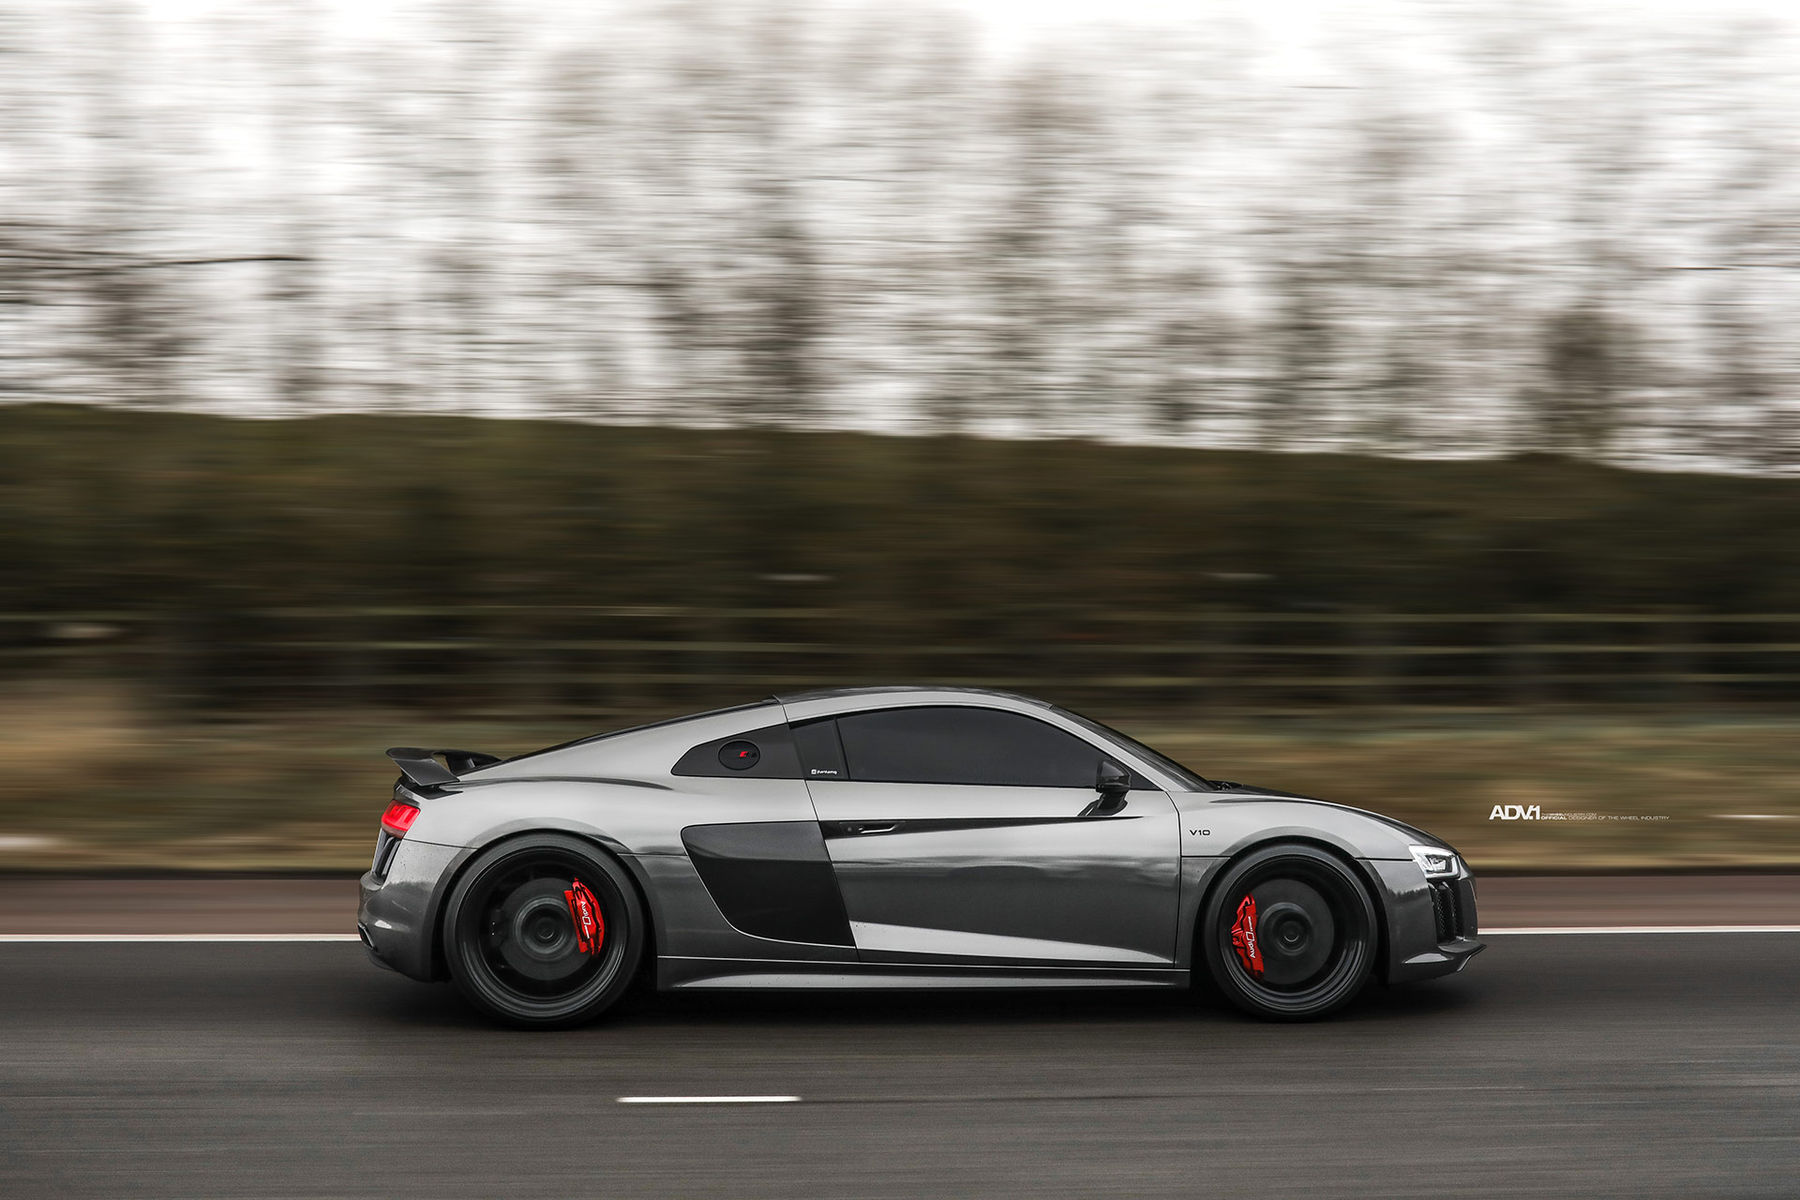 Audi R8 | Black Chrome Audi R8 - ADV5.0 M.V2 CS Series Wheels